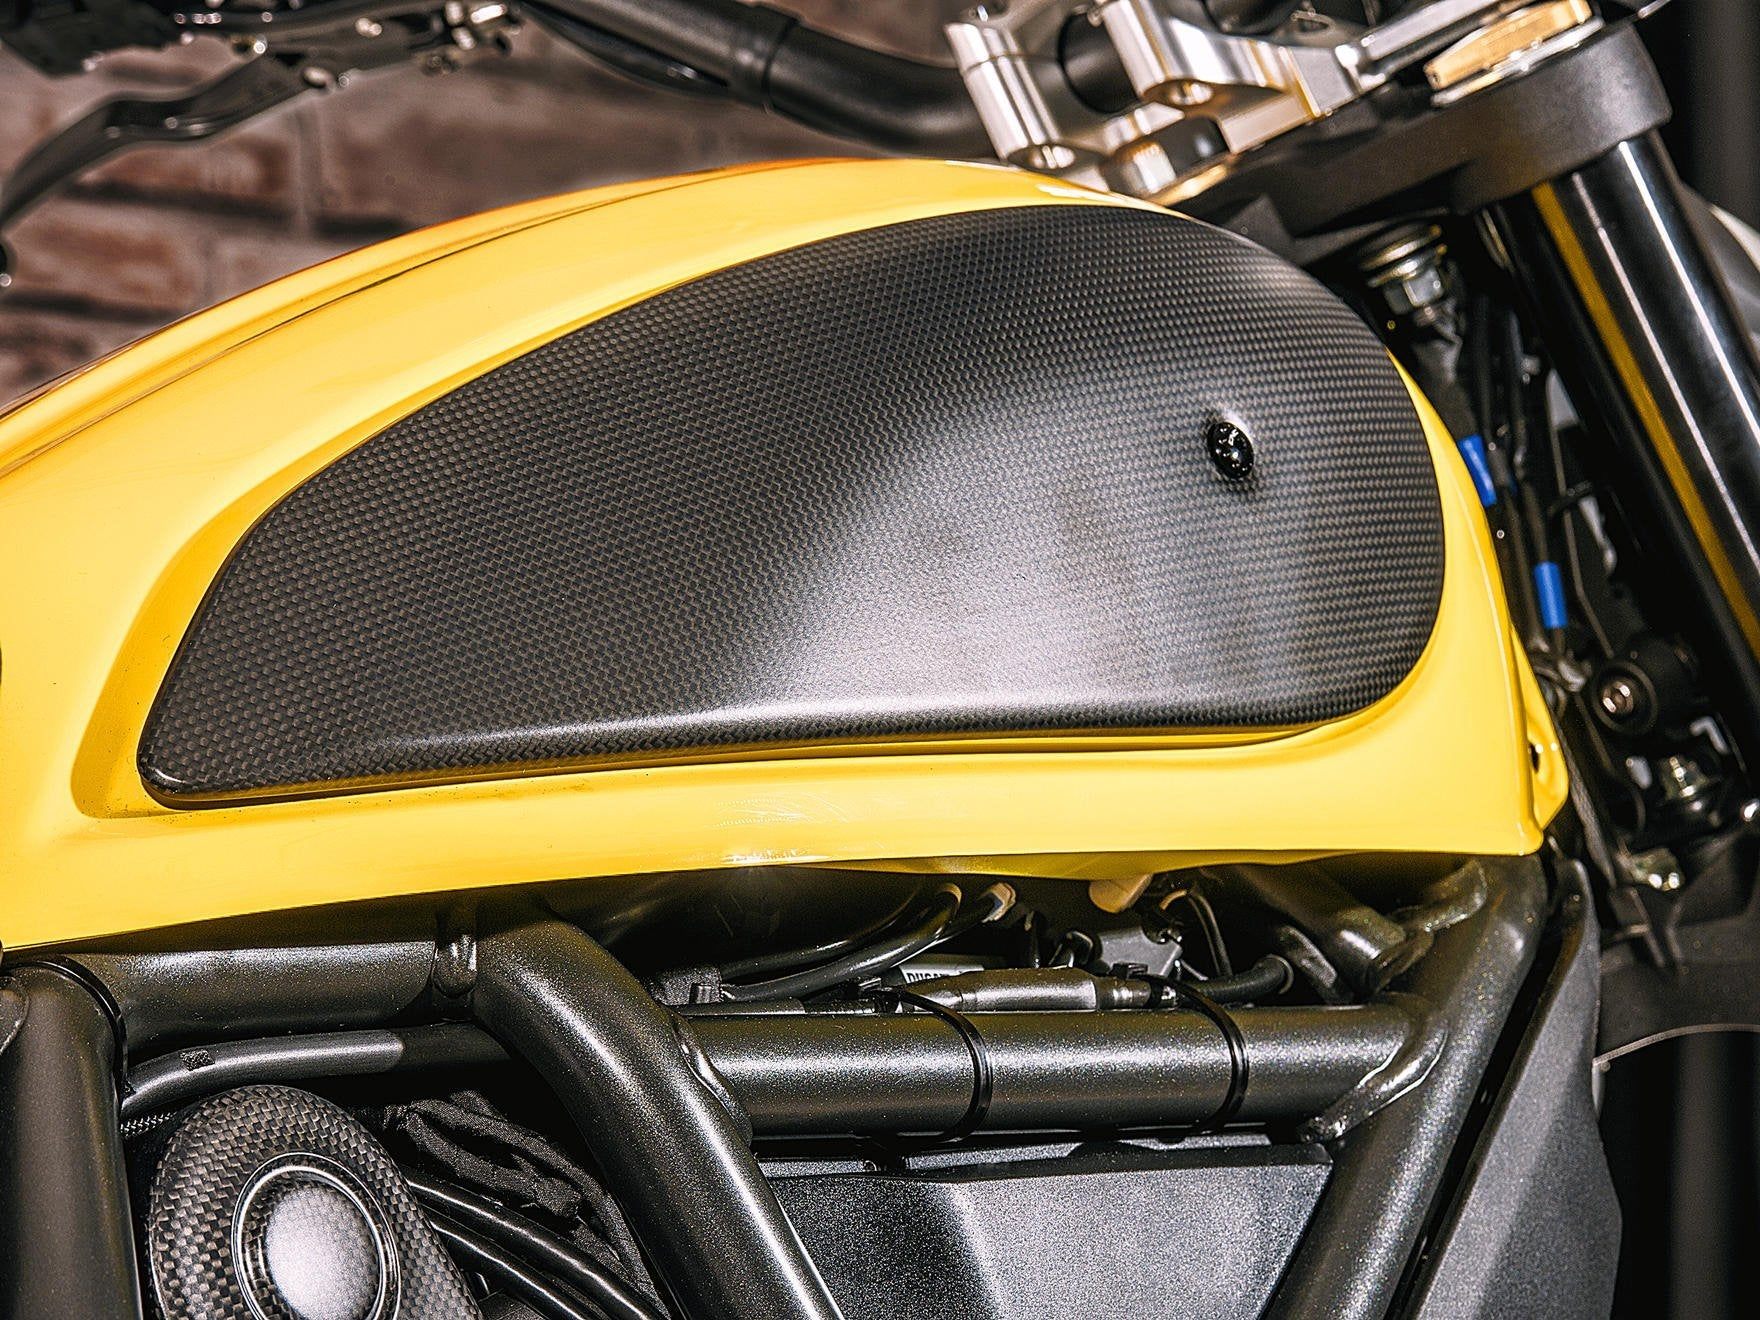 ZA974 - CNC RACING Ducati Scrambler 800 Carbon Fuel Tank Cover